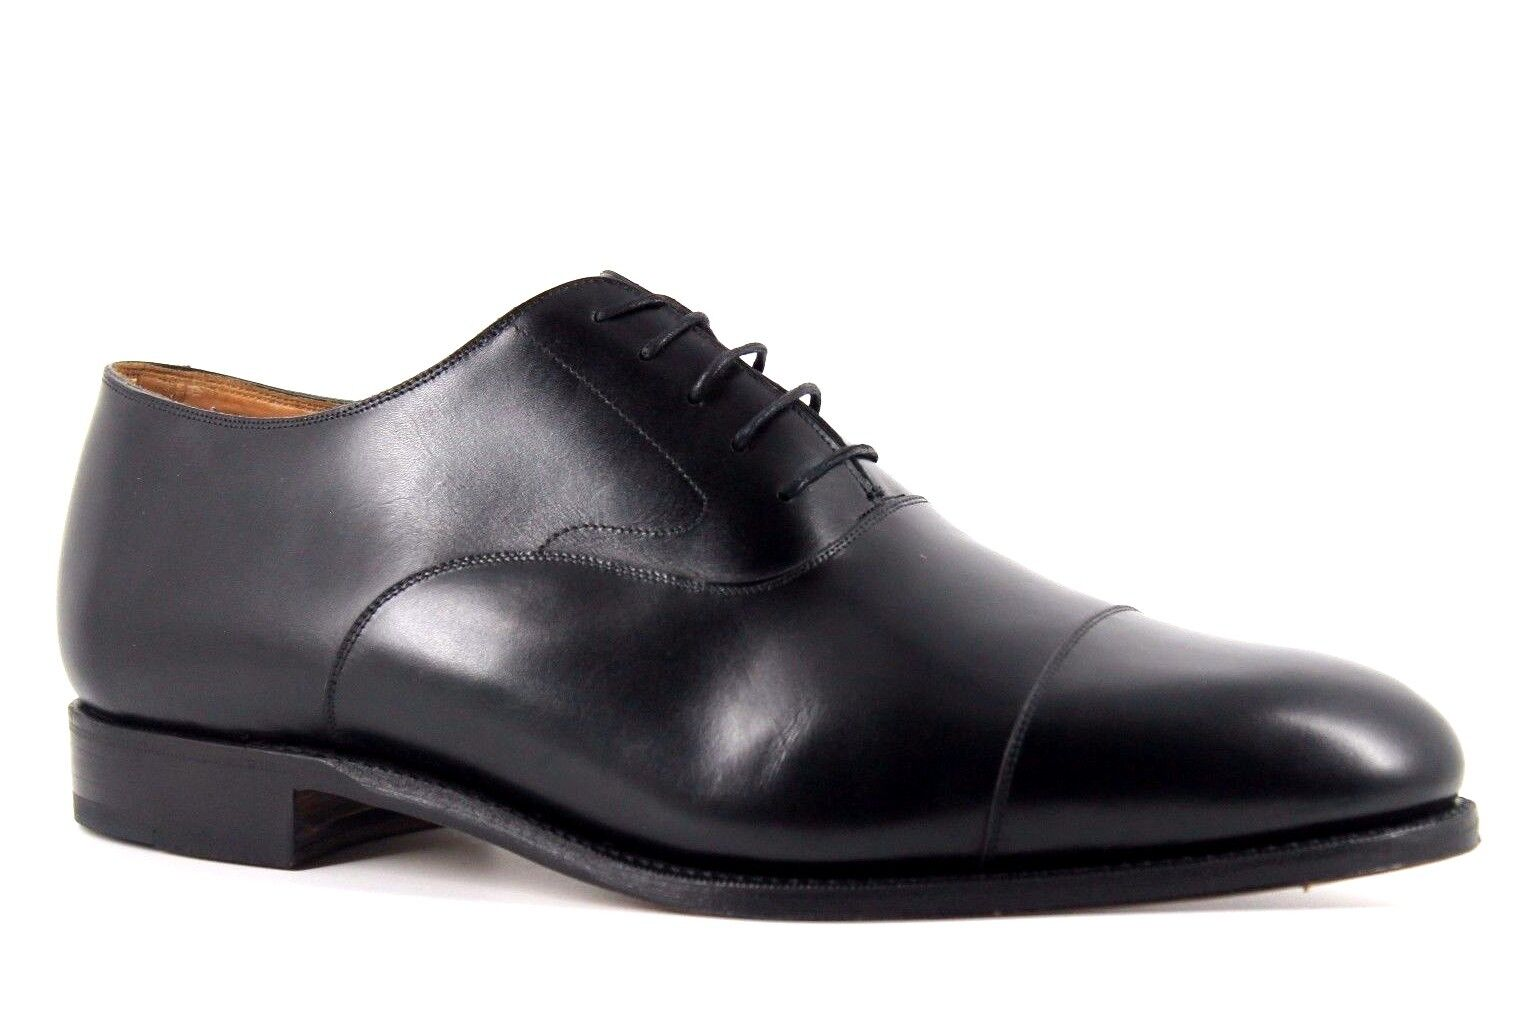 Meermin Hiro Mens UK 13 G Wide Fit Black Calf Leather Cap Toe Smart Oxford shoes